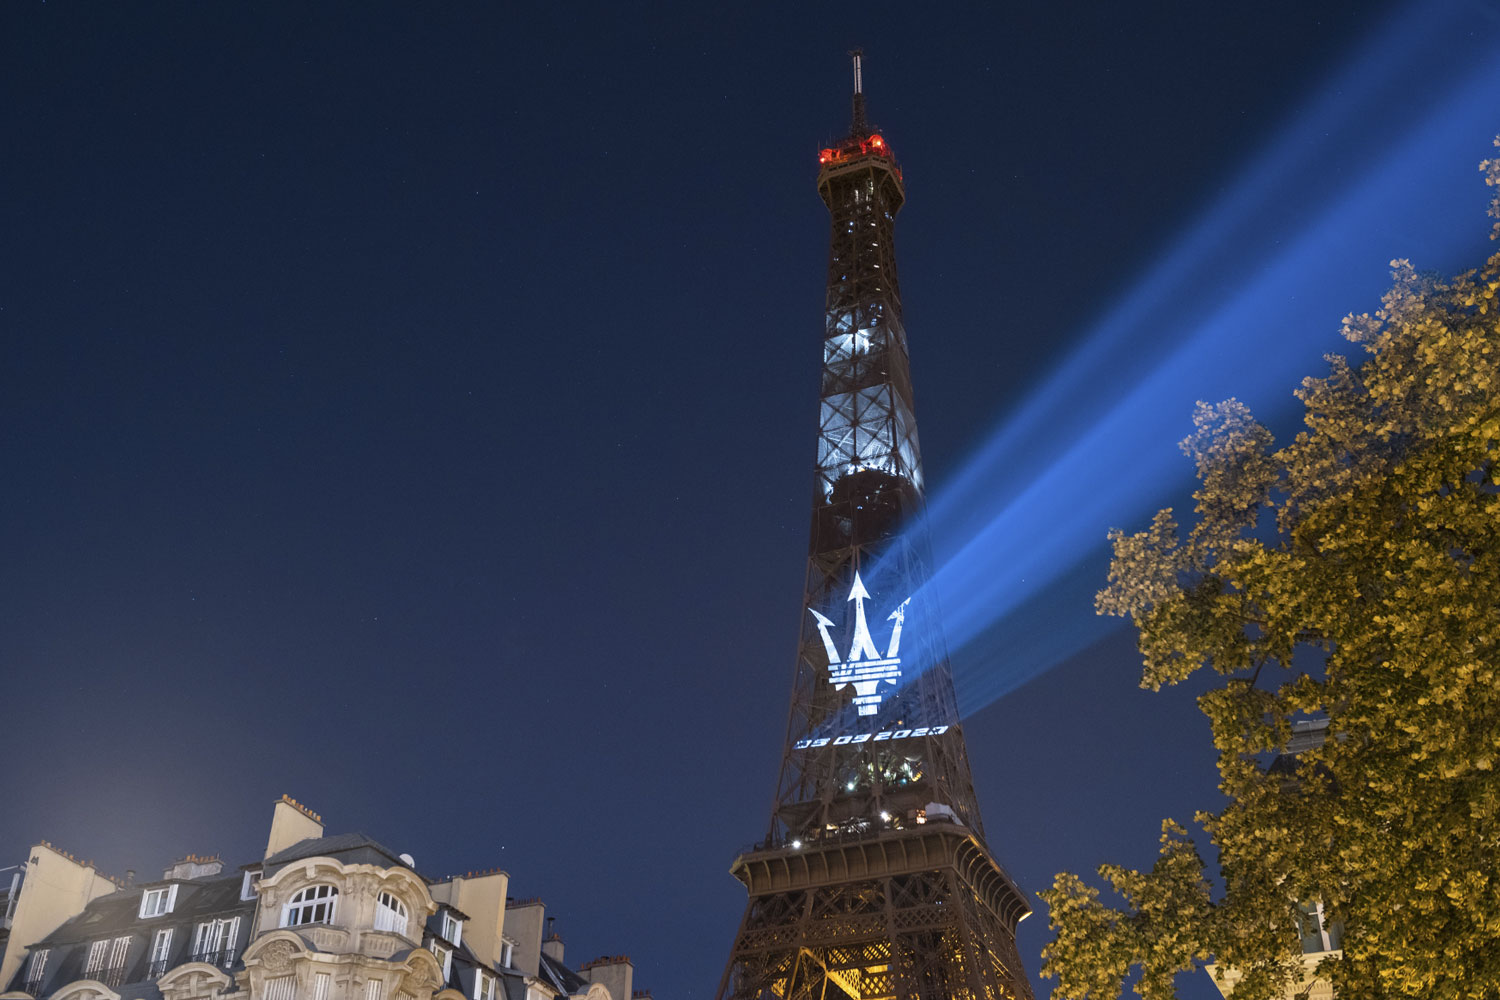 Paris projection, Street projection, mapping projection, where light falls